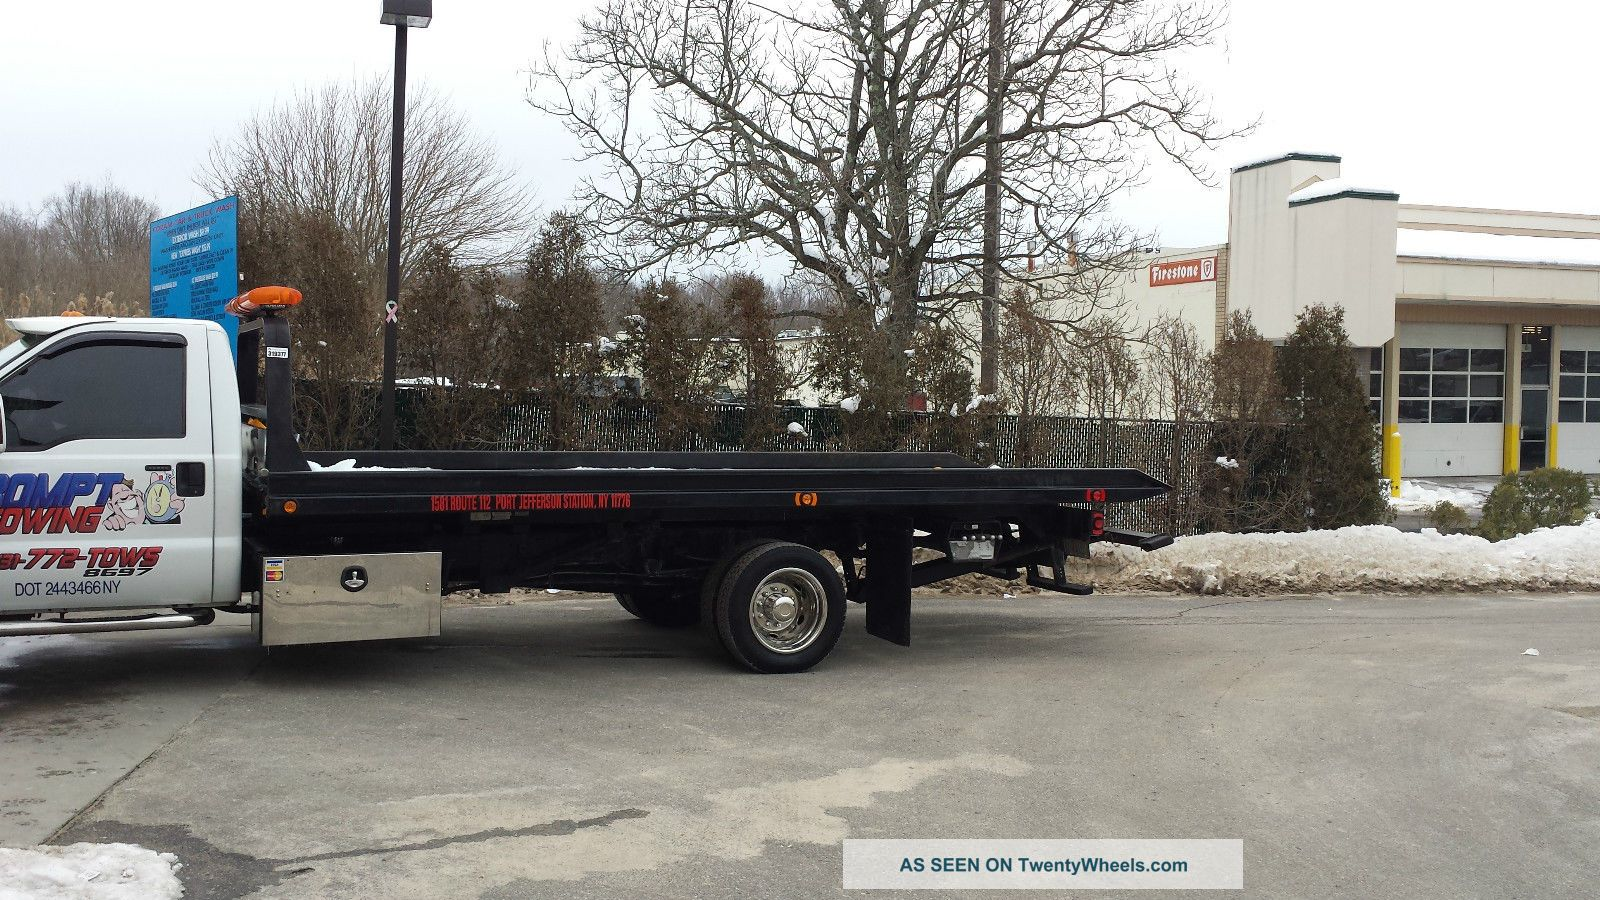 Gmc W5500 Specs Gmc W5500 Hd Gmc Pinterest Gmc Trucks And